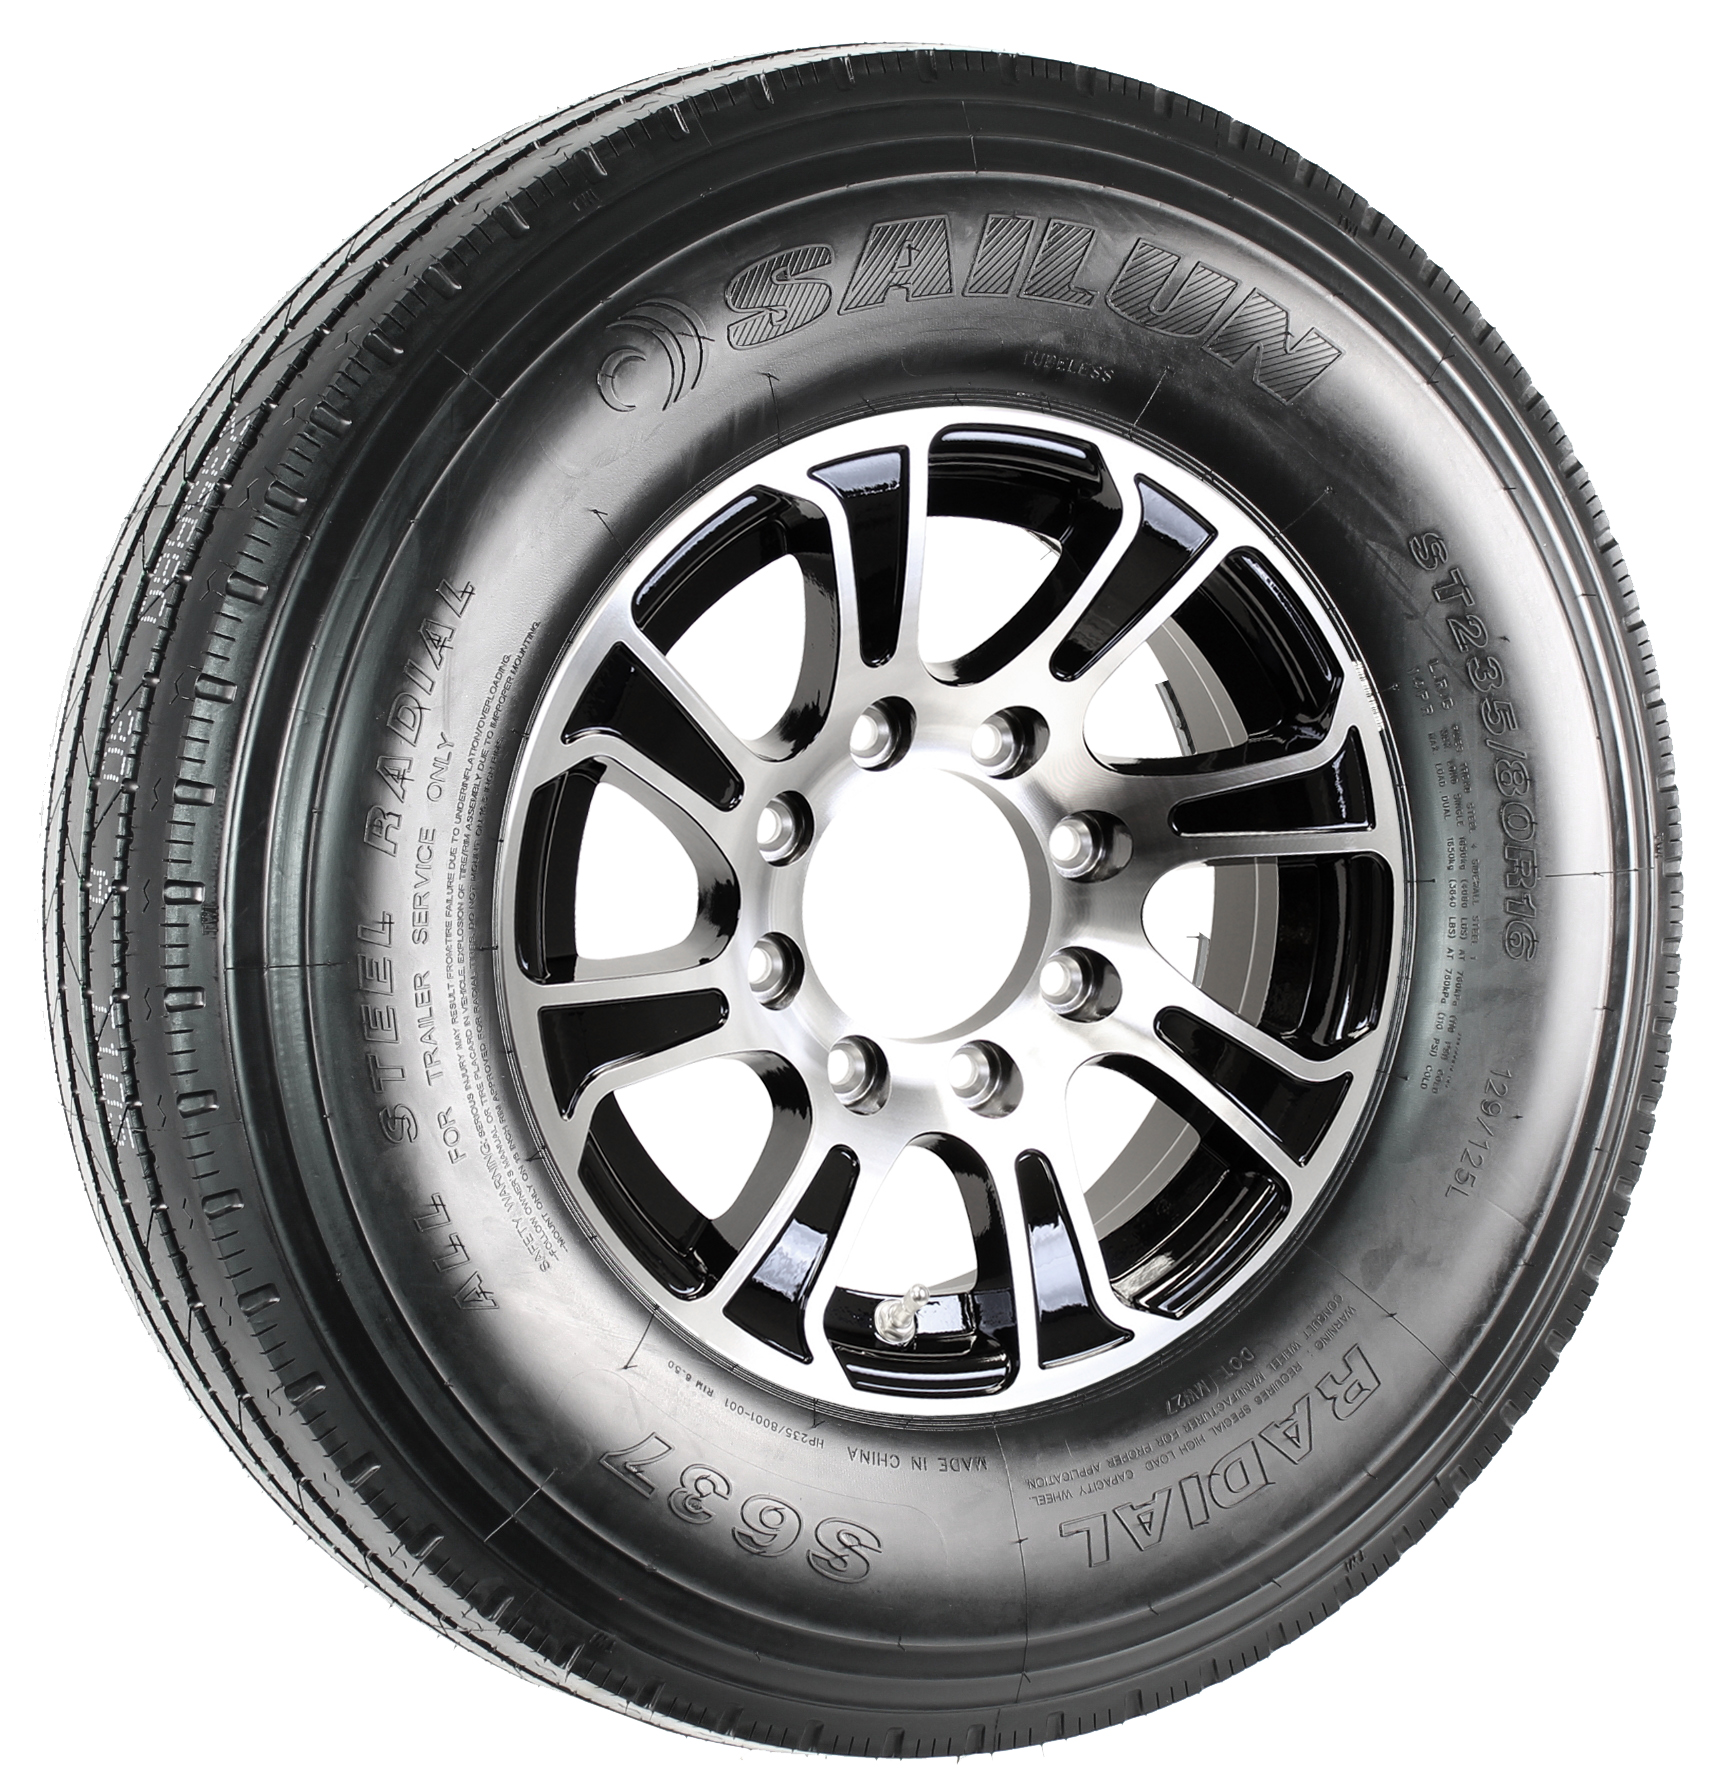 Sailun ST235/80R16G Trailer Tire on a Summit 16x6 8-6.5 Black/Machine Aluminum Wheel Assembly Image